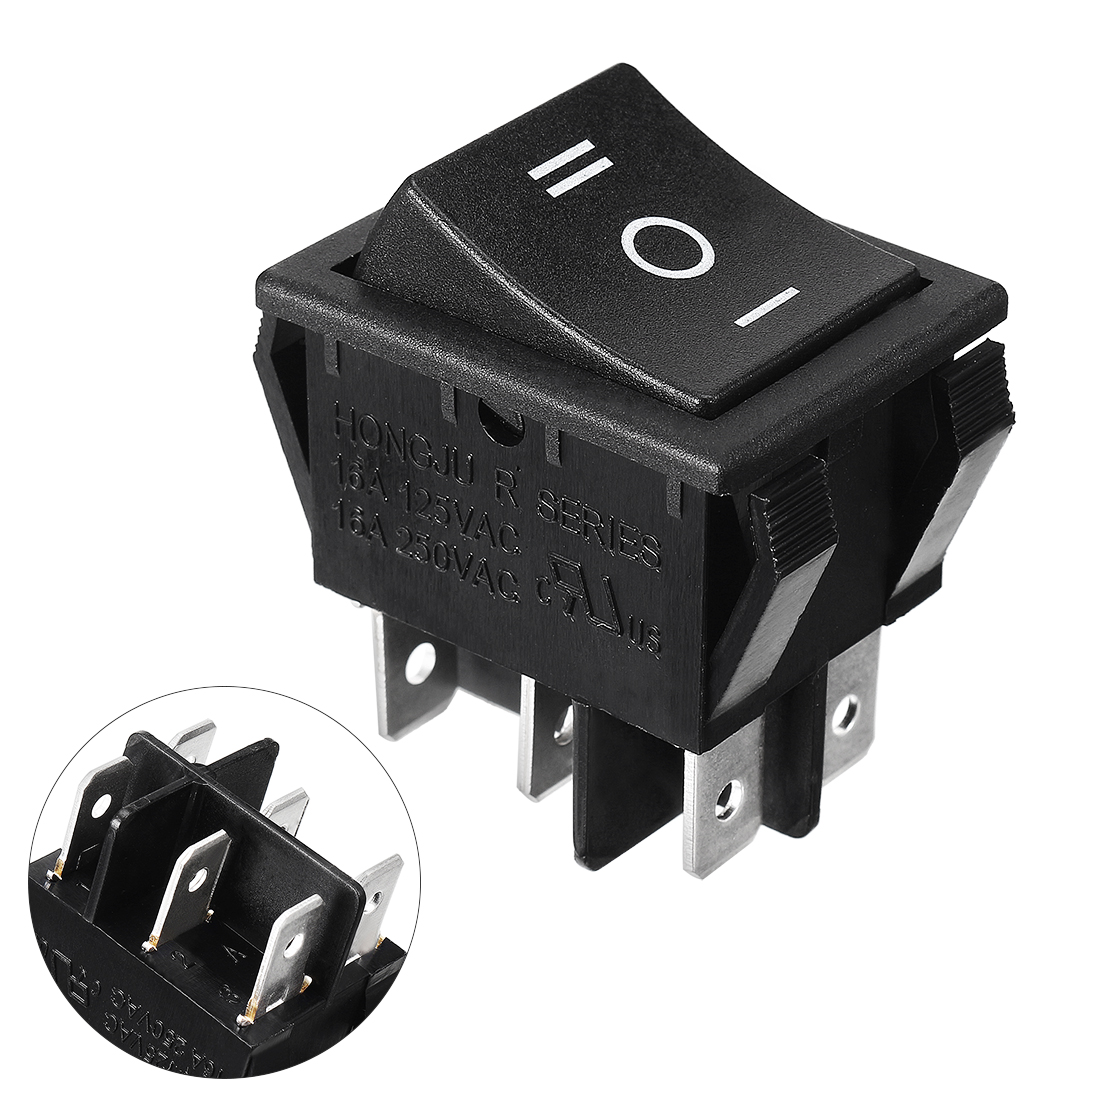 Black AC 250V/16A 125V/20A DPDT on/on 6 Pin Rocker Switch